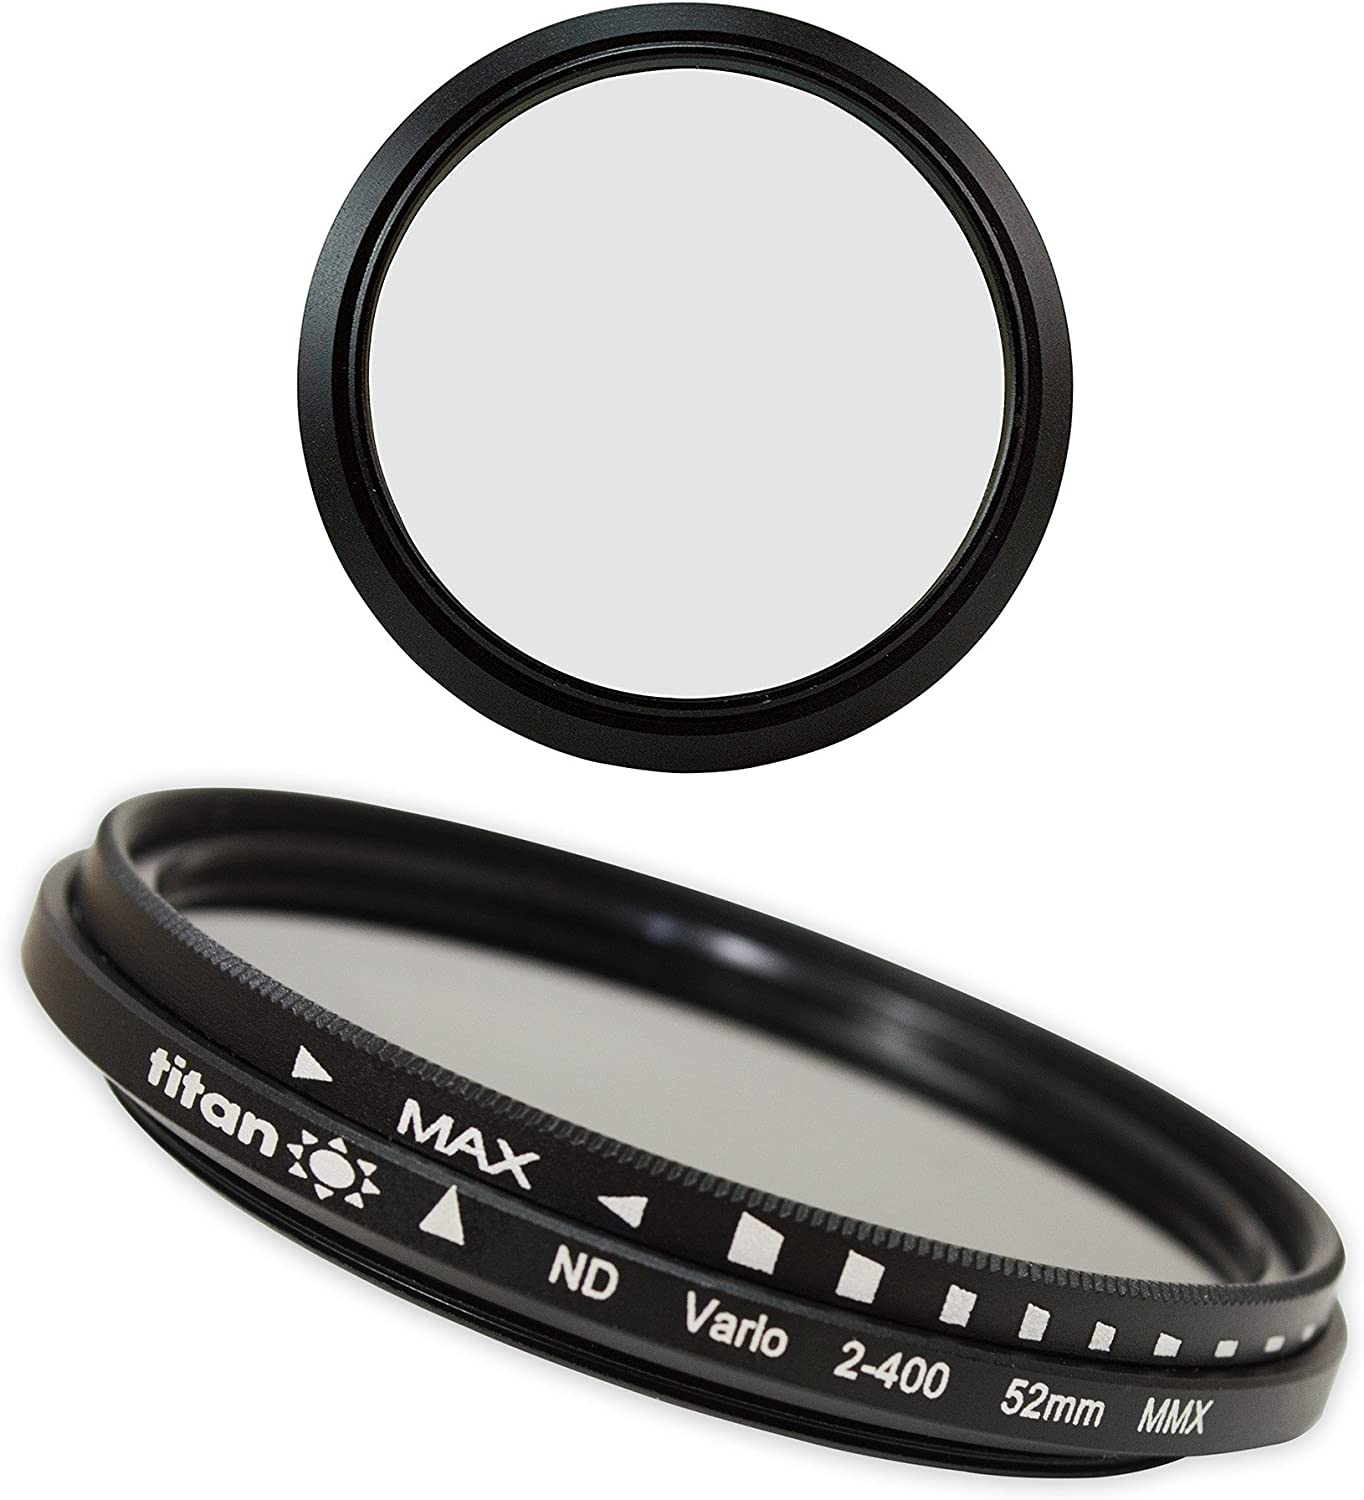 Amazon Com 52mm Adjustable Nd Filter Nd2 400 Ultra Slim Low Profile Variable Fader Neutral Density Filter With High Index Optical Glass Includes Protective Case By Titan Camera Photo